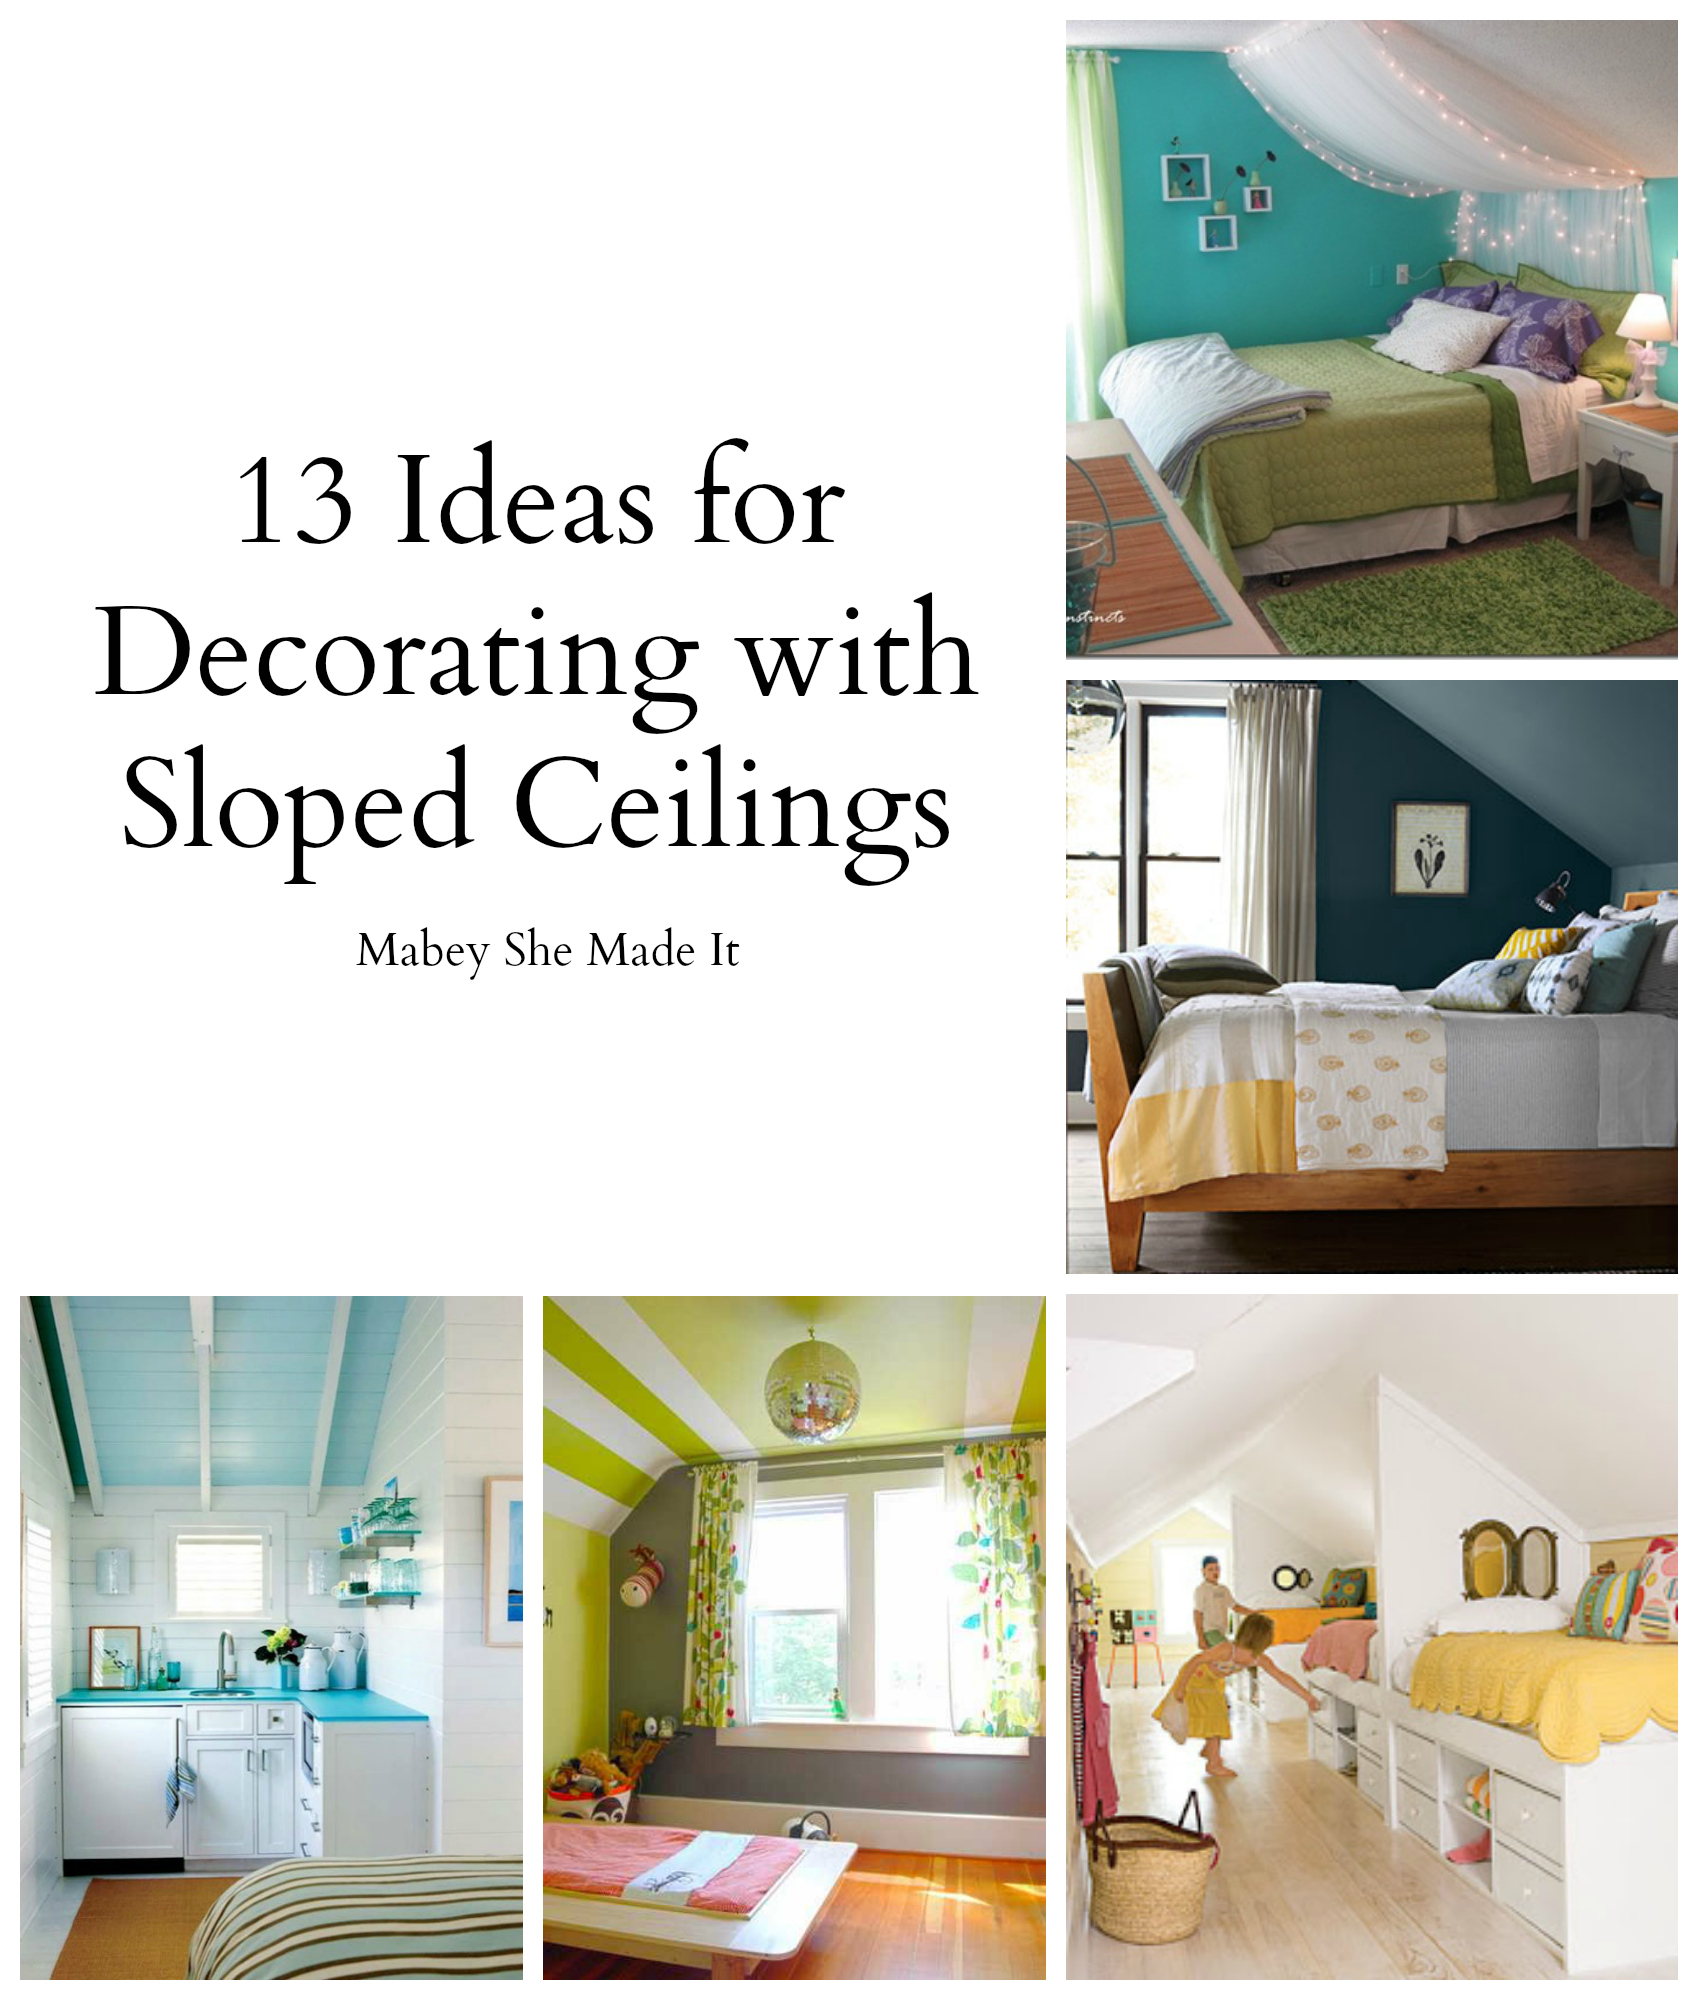 17 Sloped Ceiling Bedroom Design Ideas Mabey She Made It